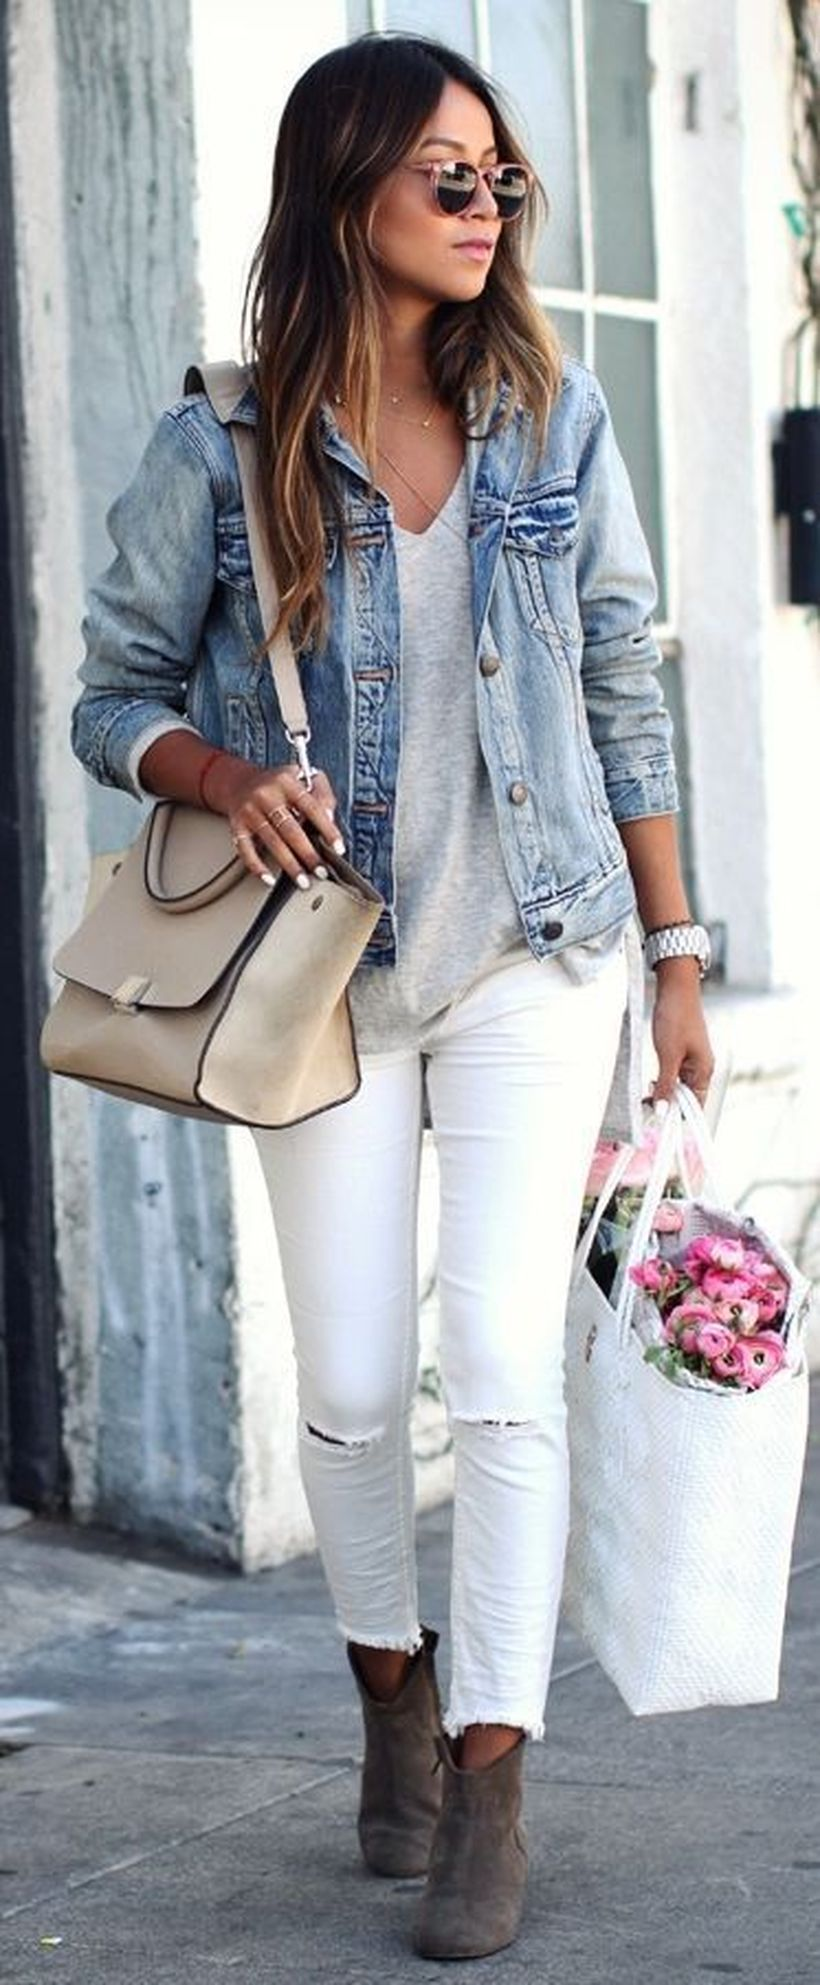 Perfect ways to wear white denim jeans outfits 14